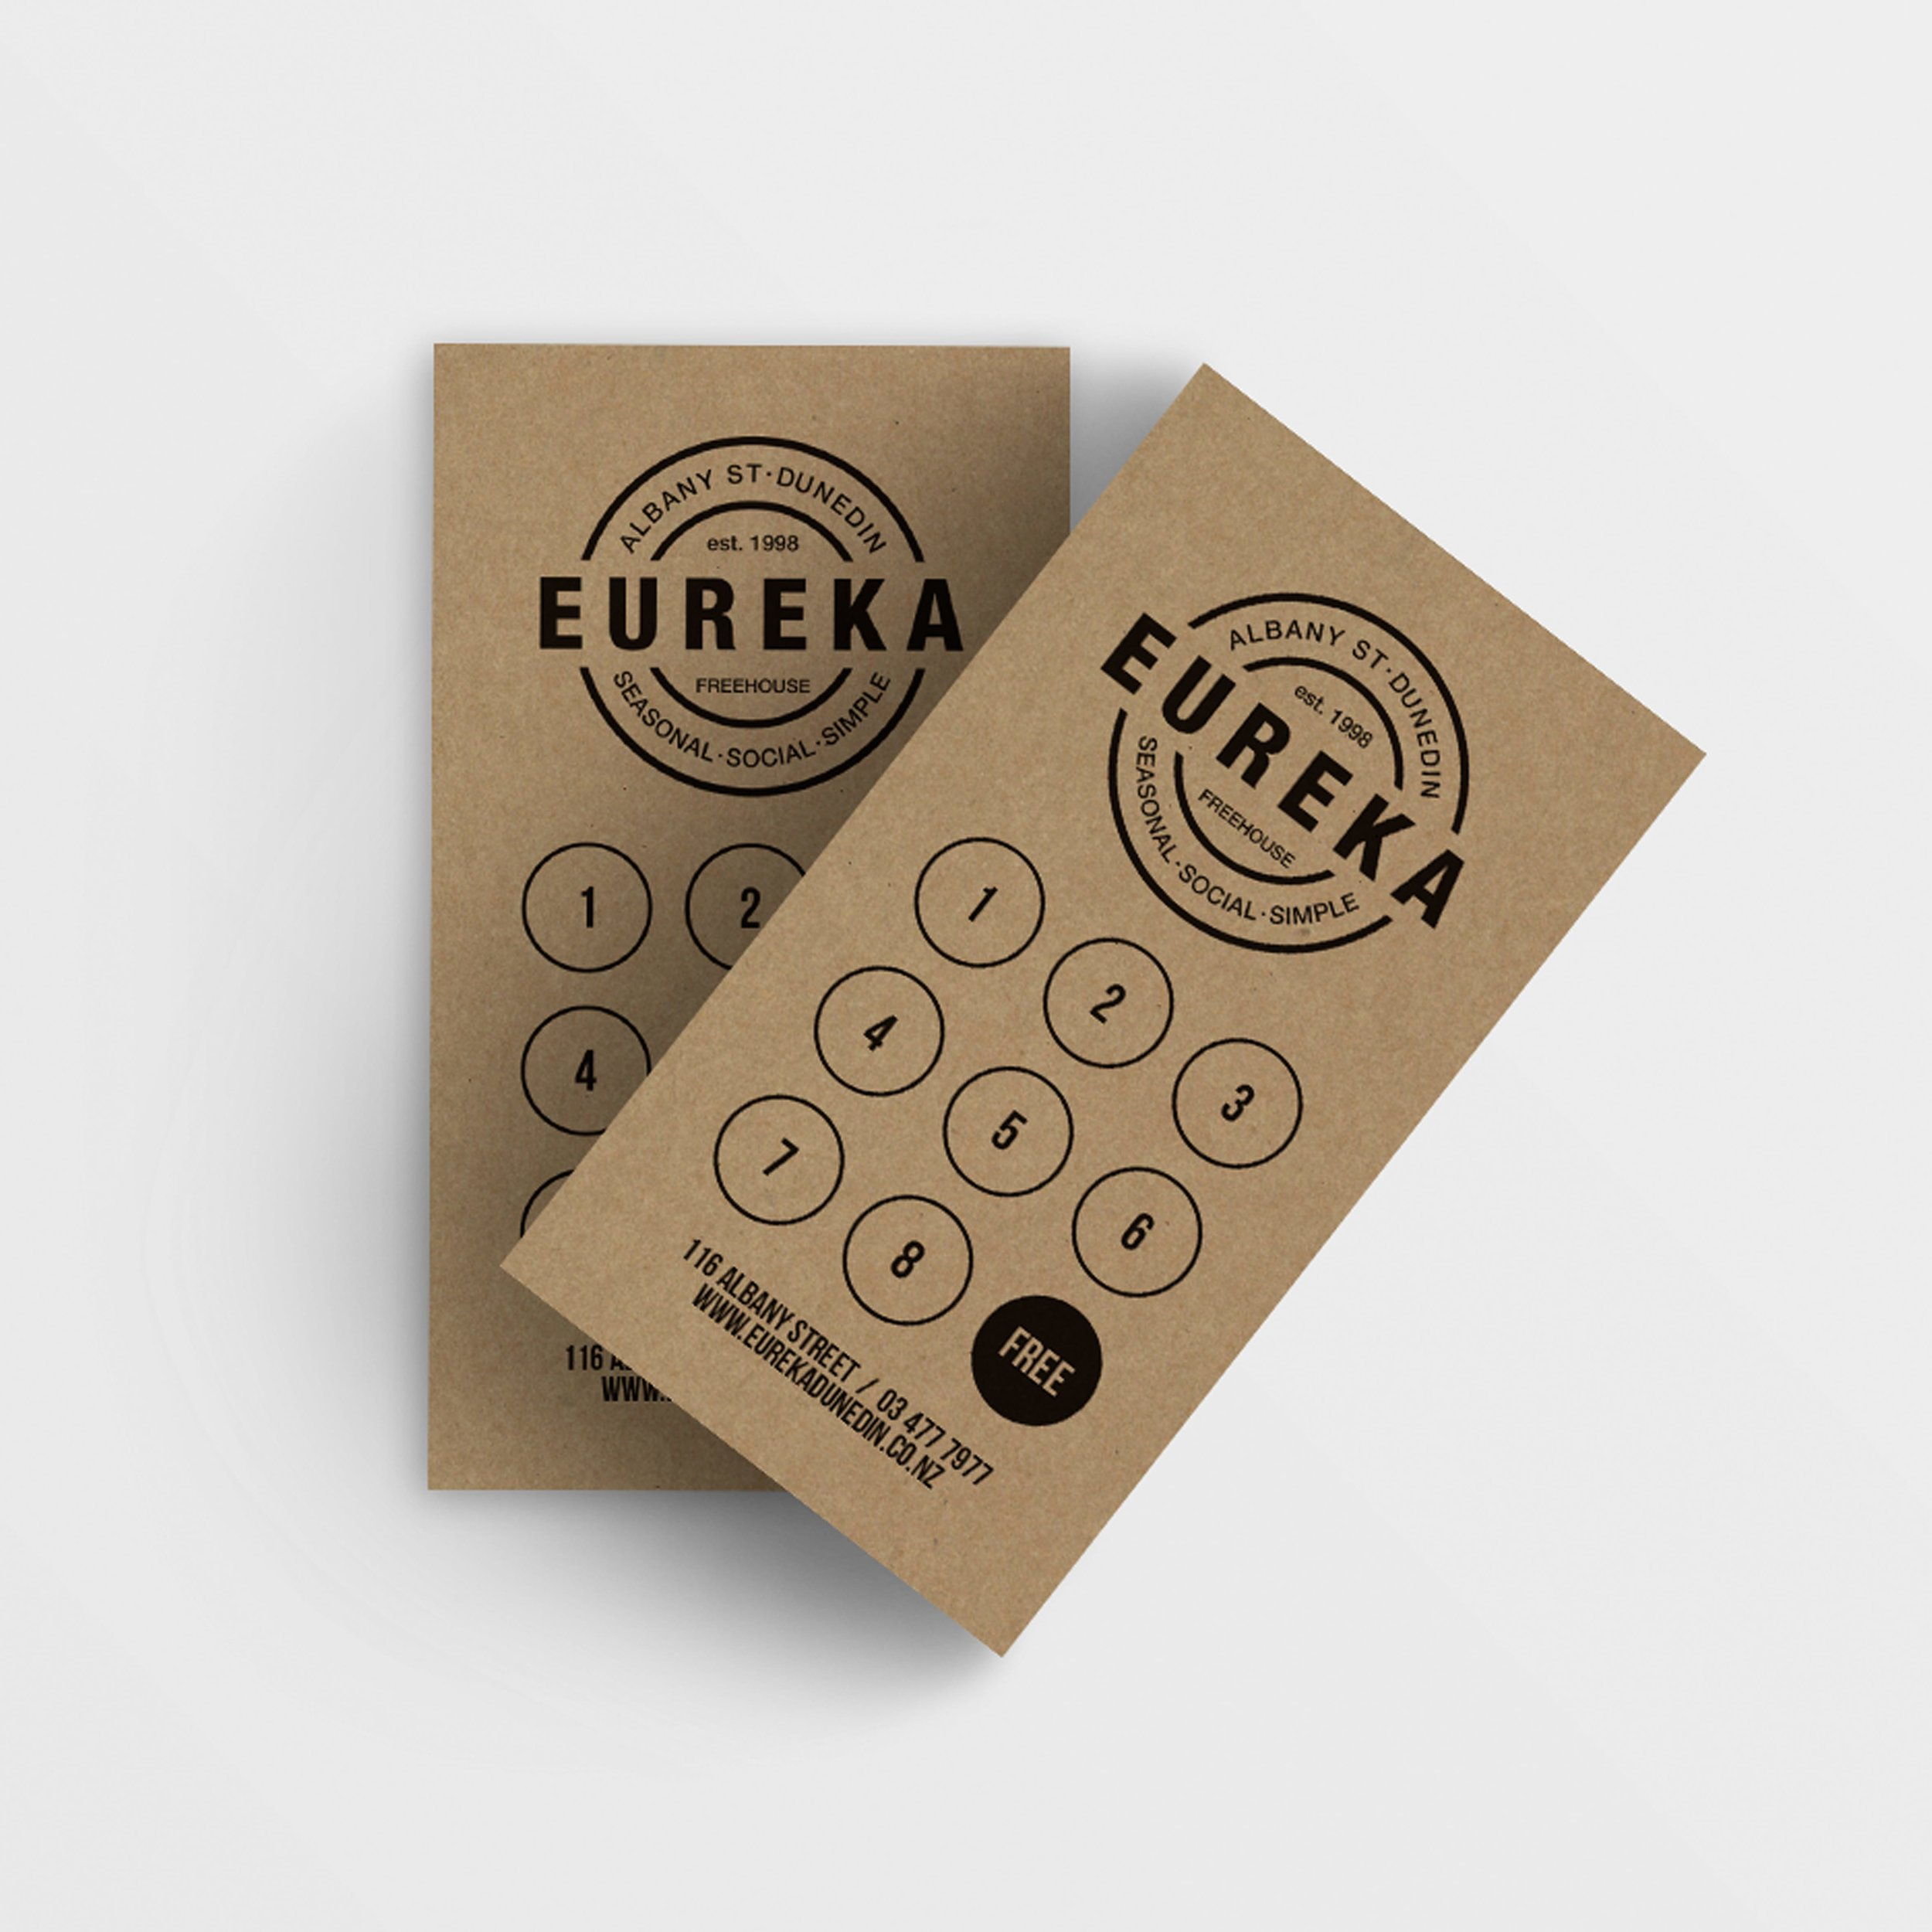 Eureka Loyalty Card (square)-min.jpg